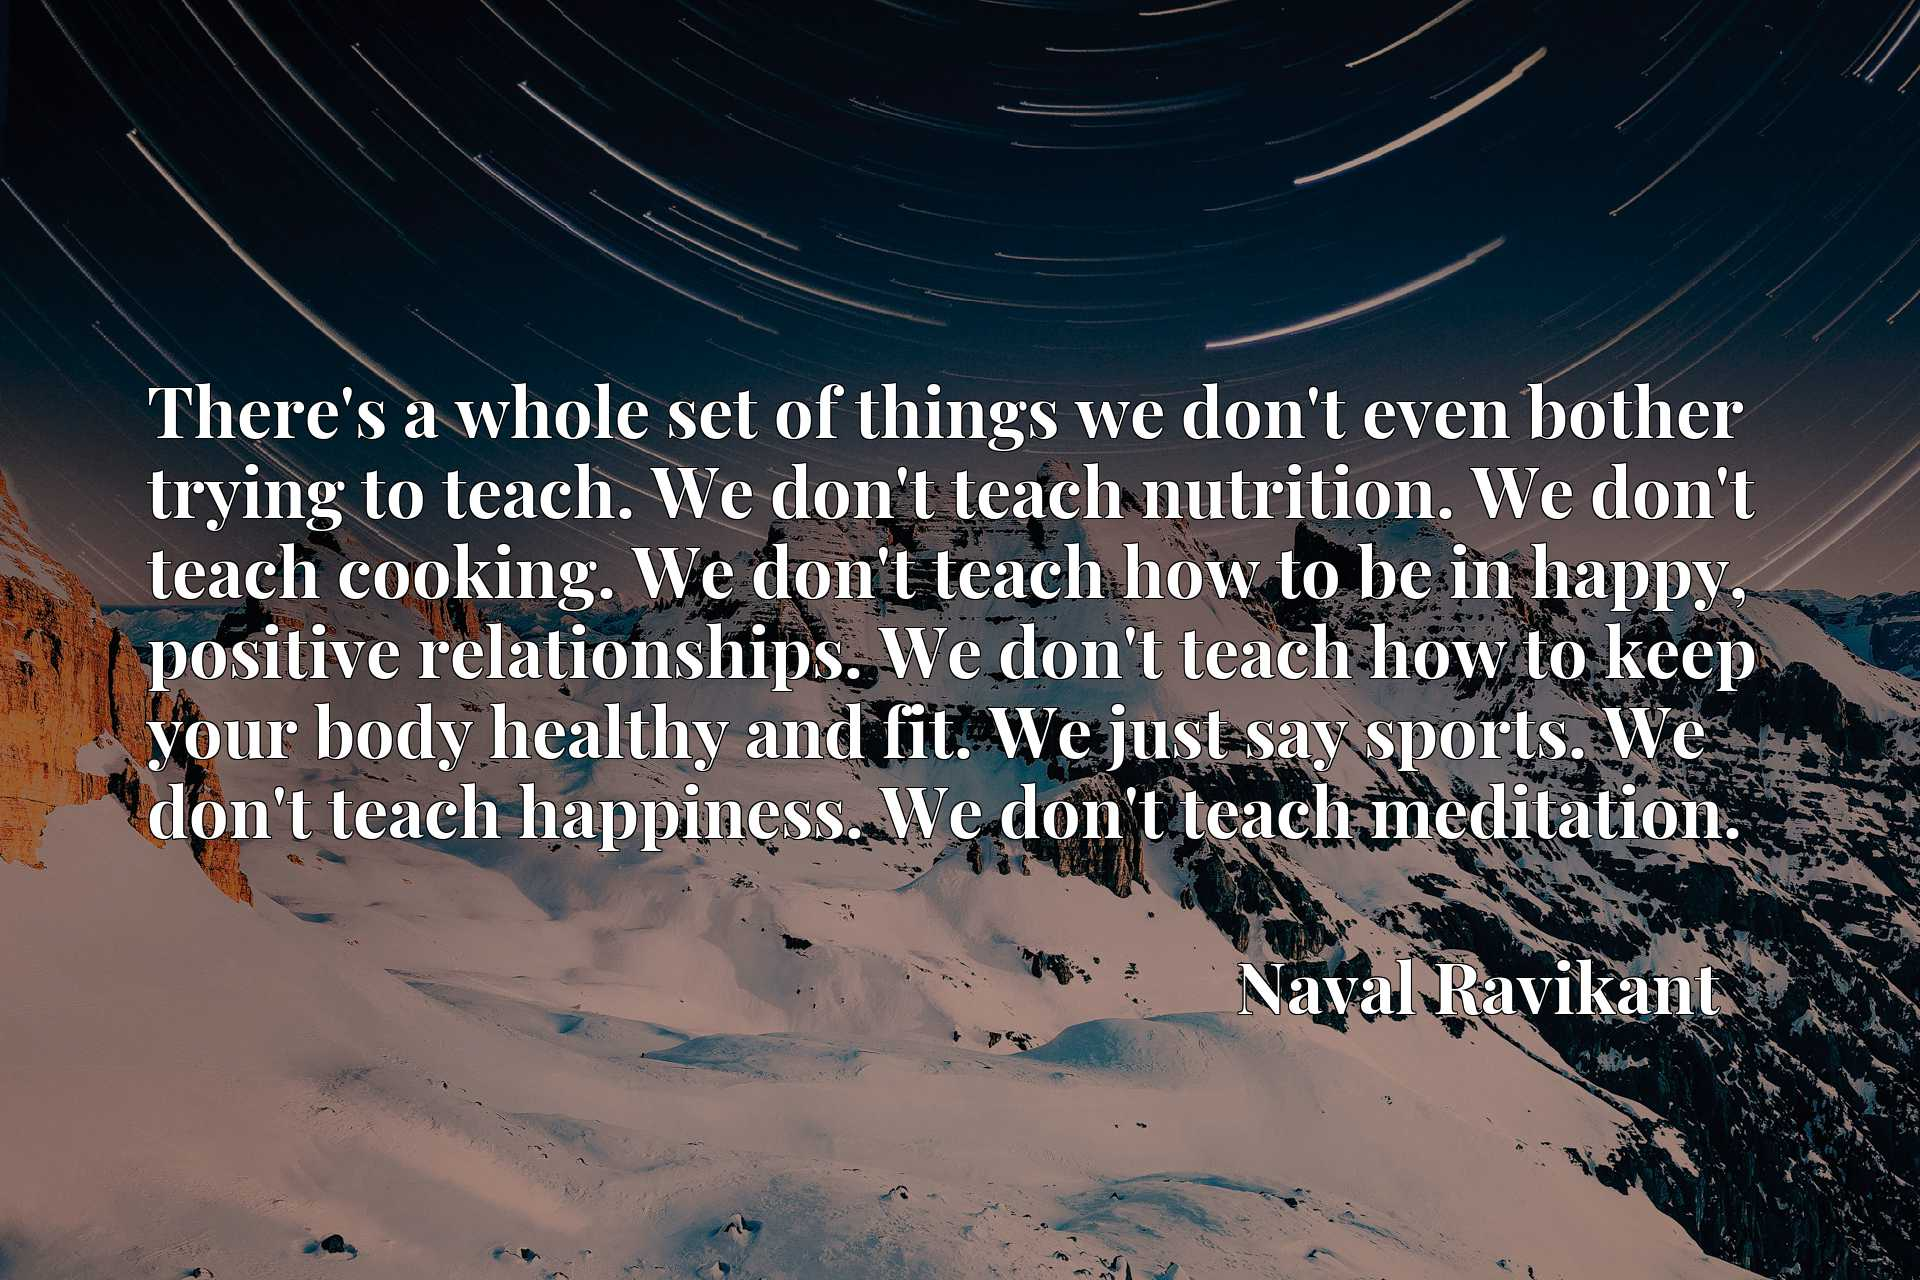 There's a whole set of things we don't even bother trying to teach. We don't teach nutrition. We don't teach cooking. We don't teach how to be in happy, positive relationships. We don't teach how to keep your body healthy and fit. We just say sports. We don't teach happiness. We don't teach meditation.